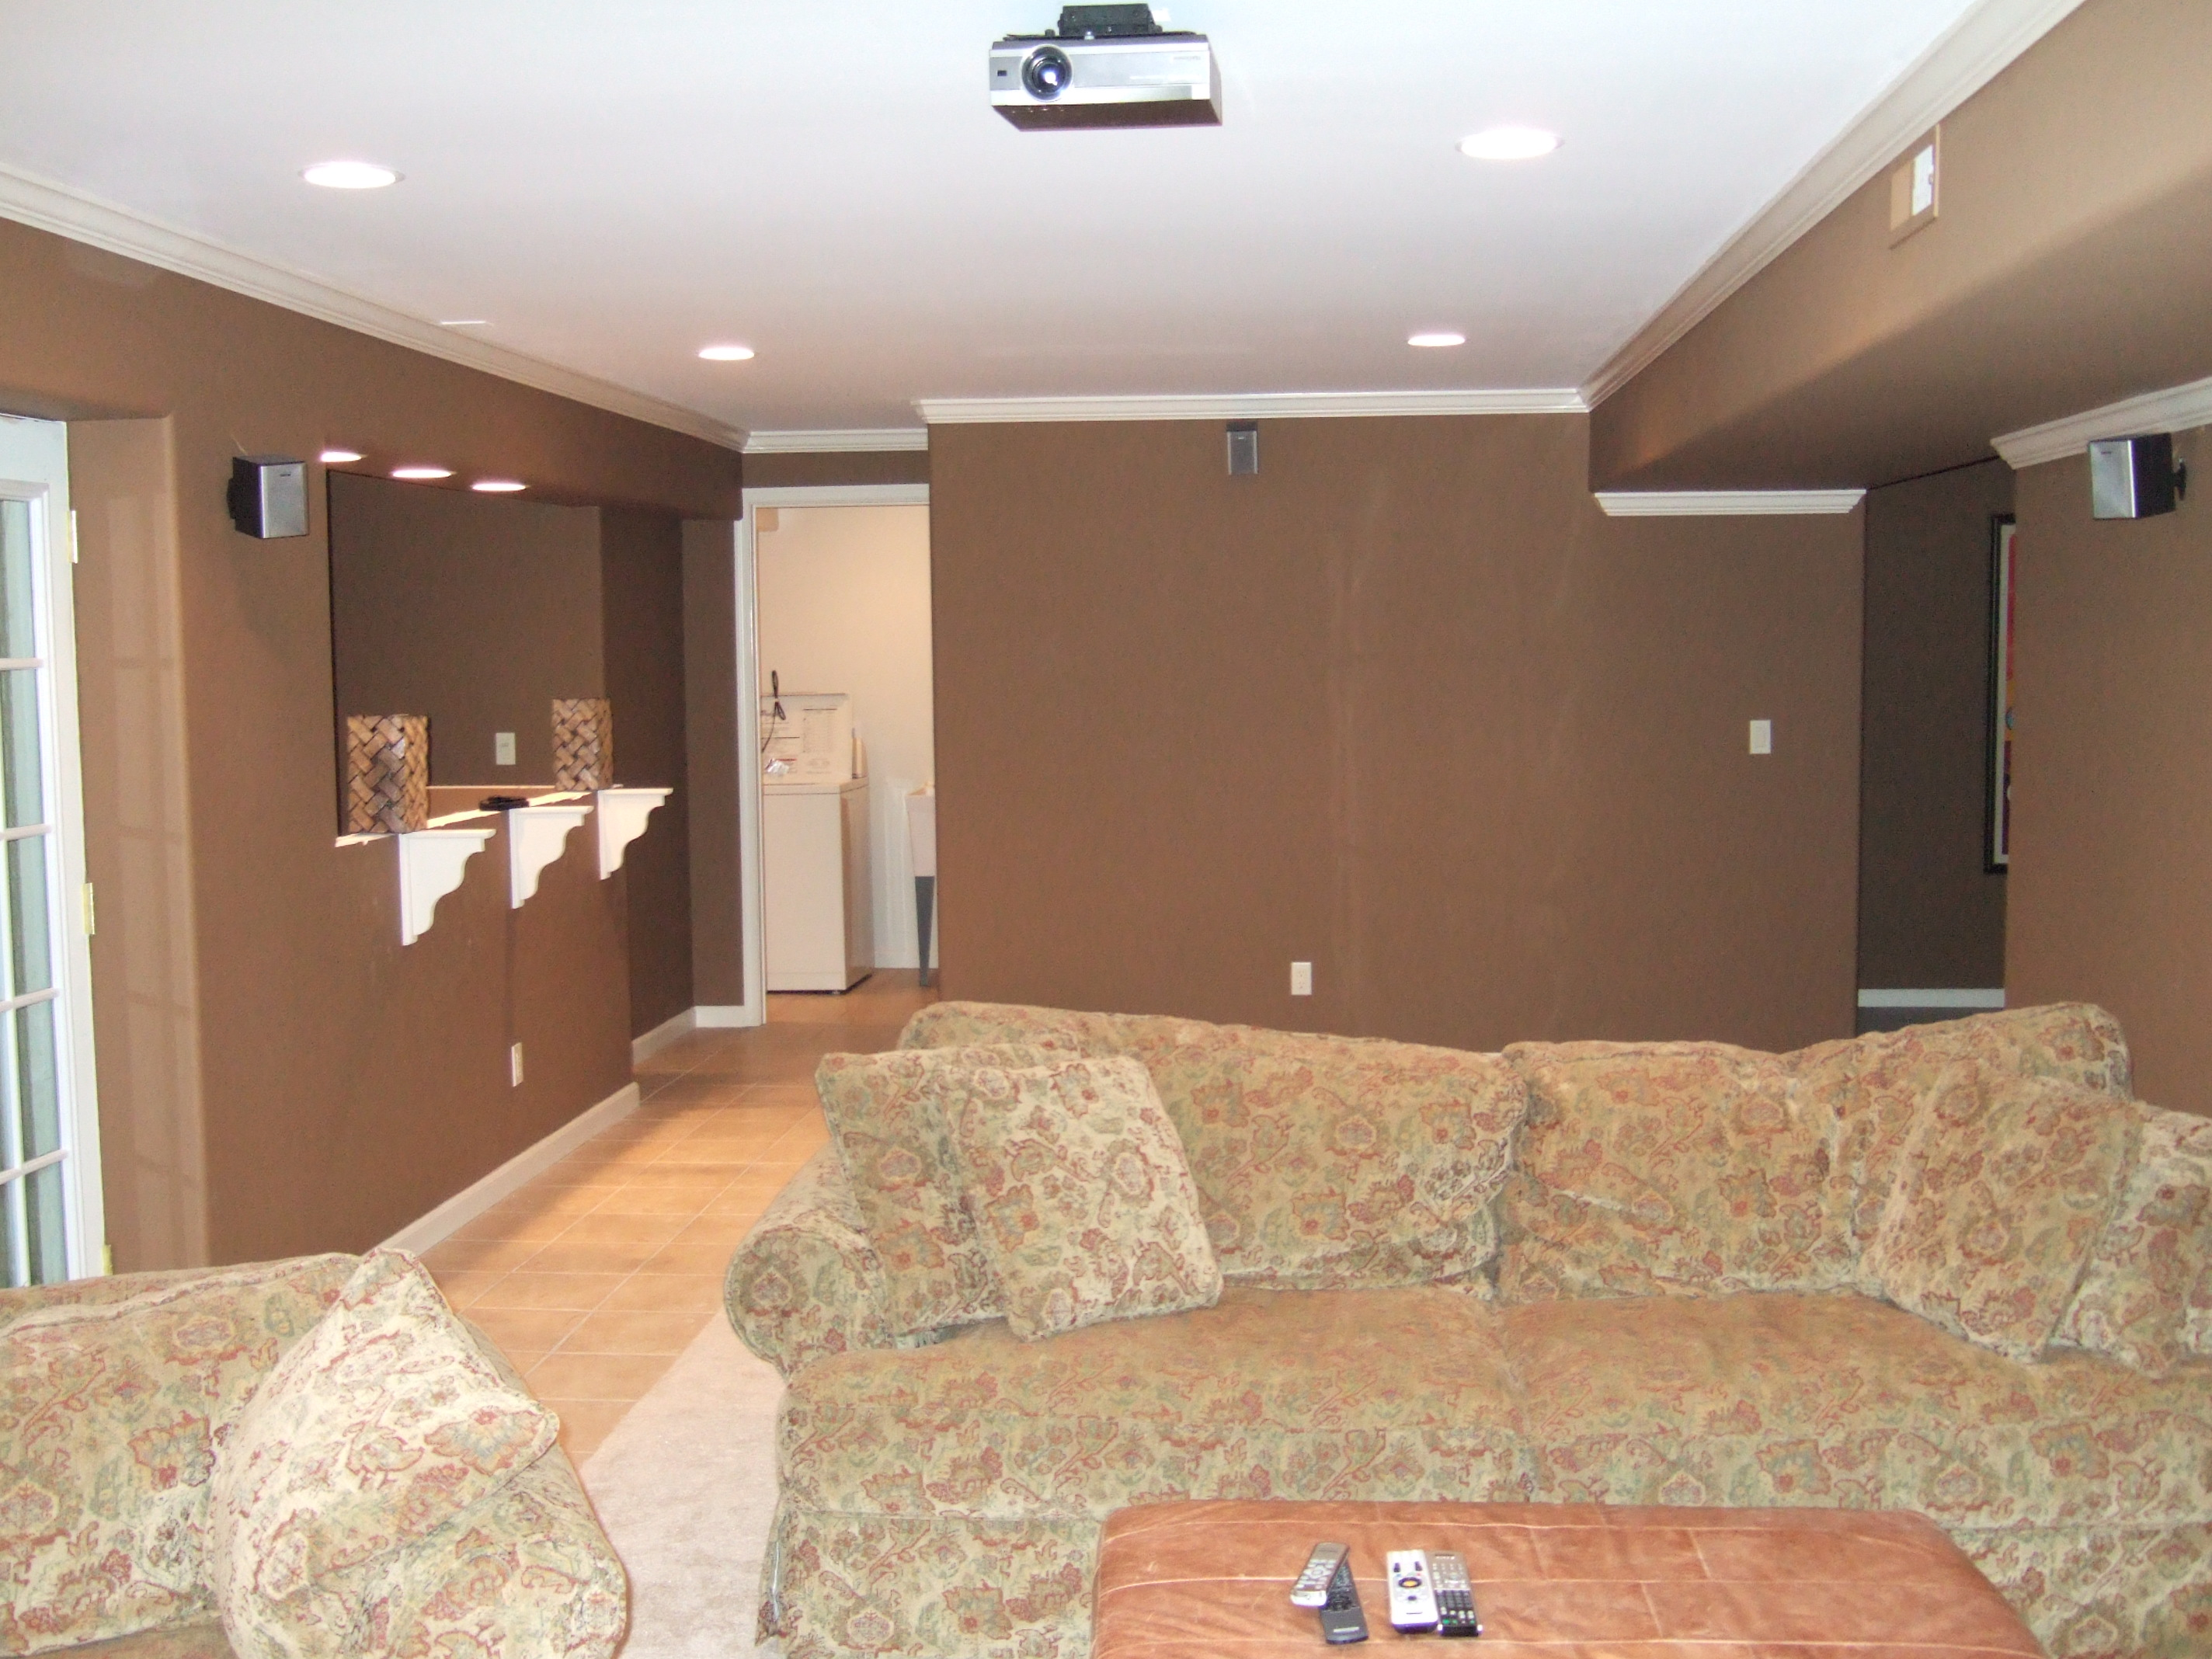 Finished basement remodeling fairfax manassas pictures design tile ideas photos truck va - Basements by design ...